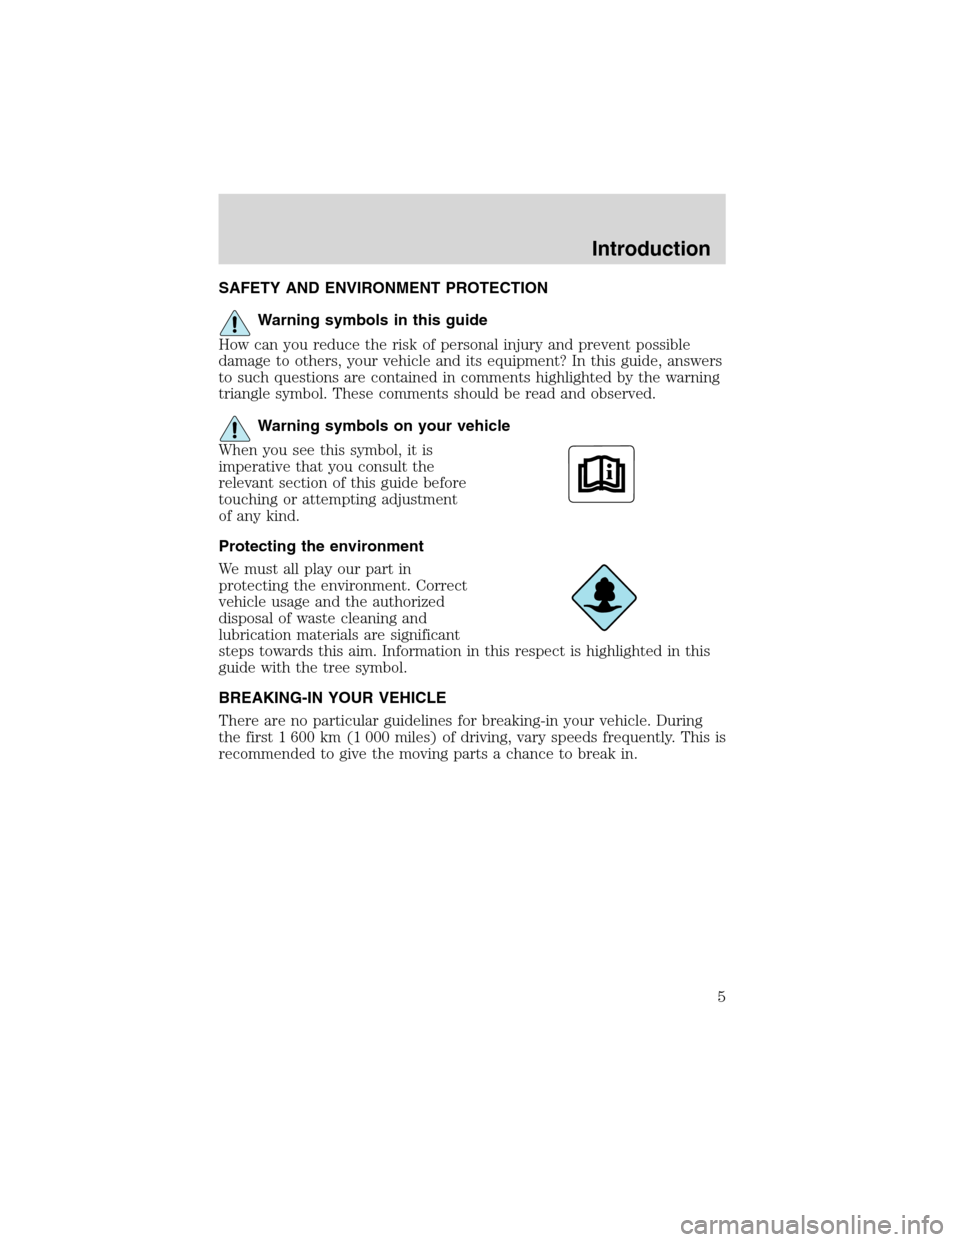 FORD EXCURSION 2004 1.G Owners Manual, Page 5